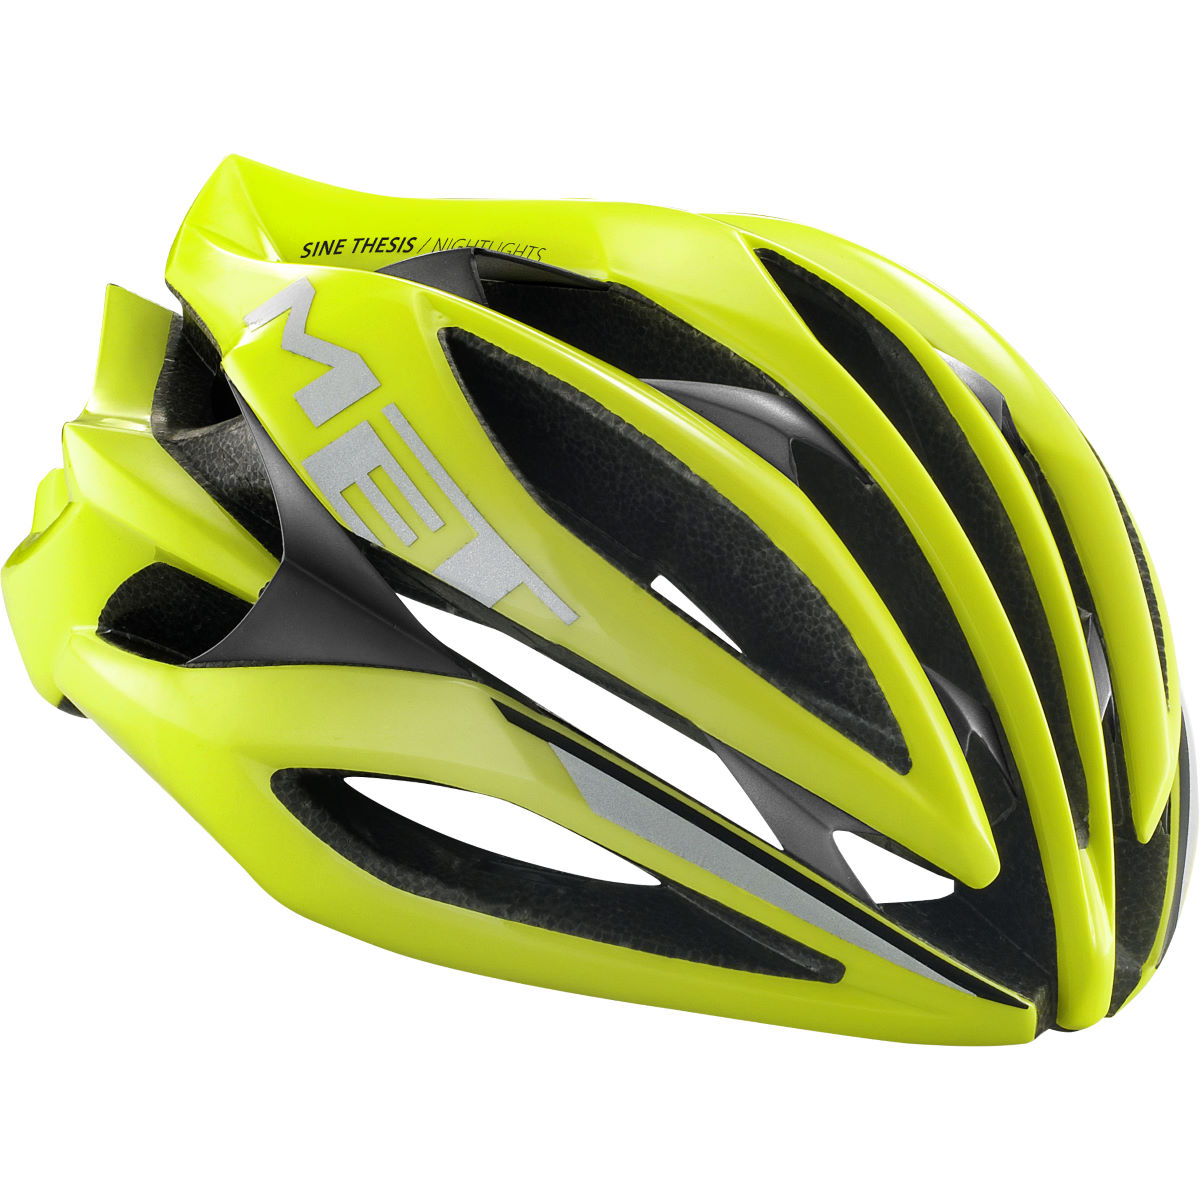 Casque de route MET Sine Thesis - M Jaune Casques de route